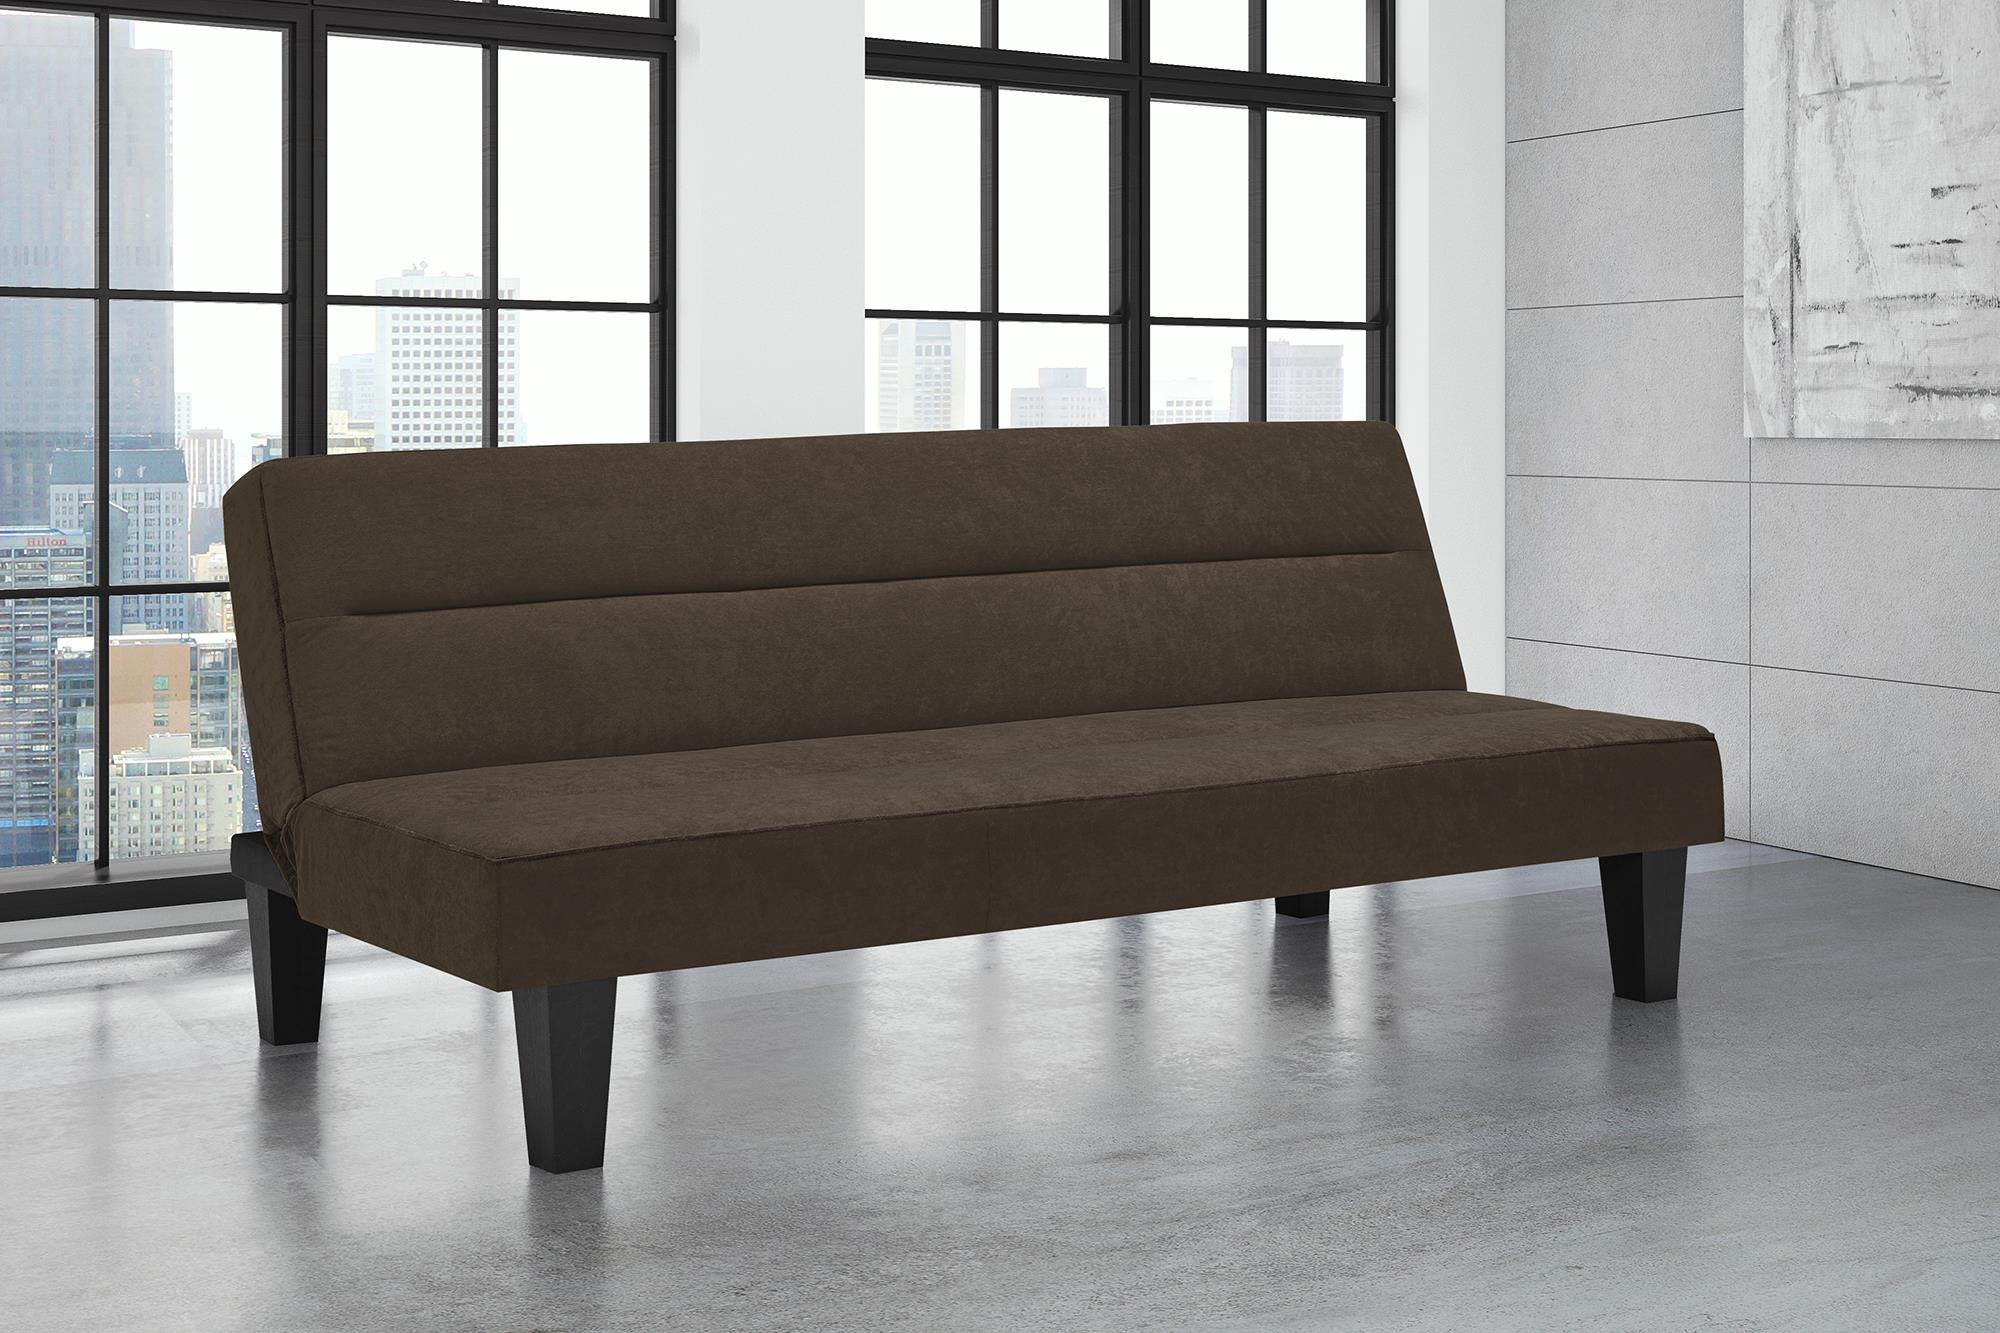 Kebo Futon Sofa Bed Multiple Colors Walmart